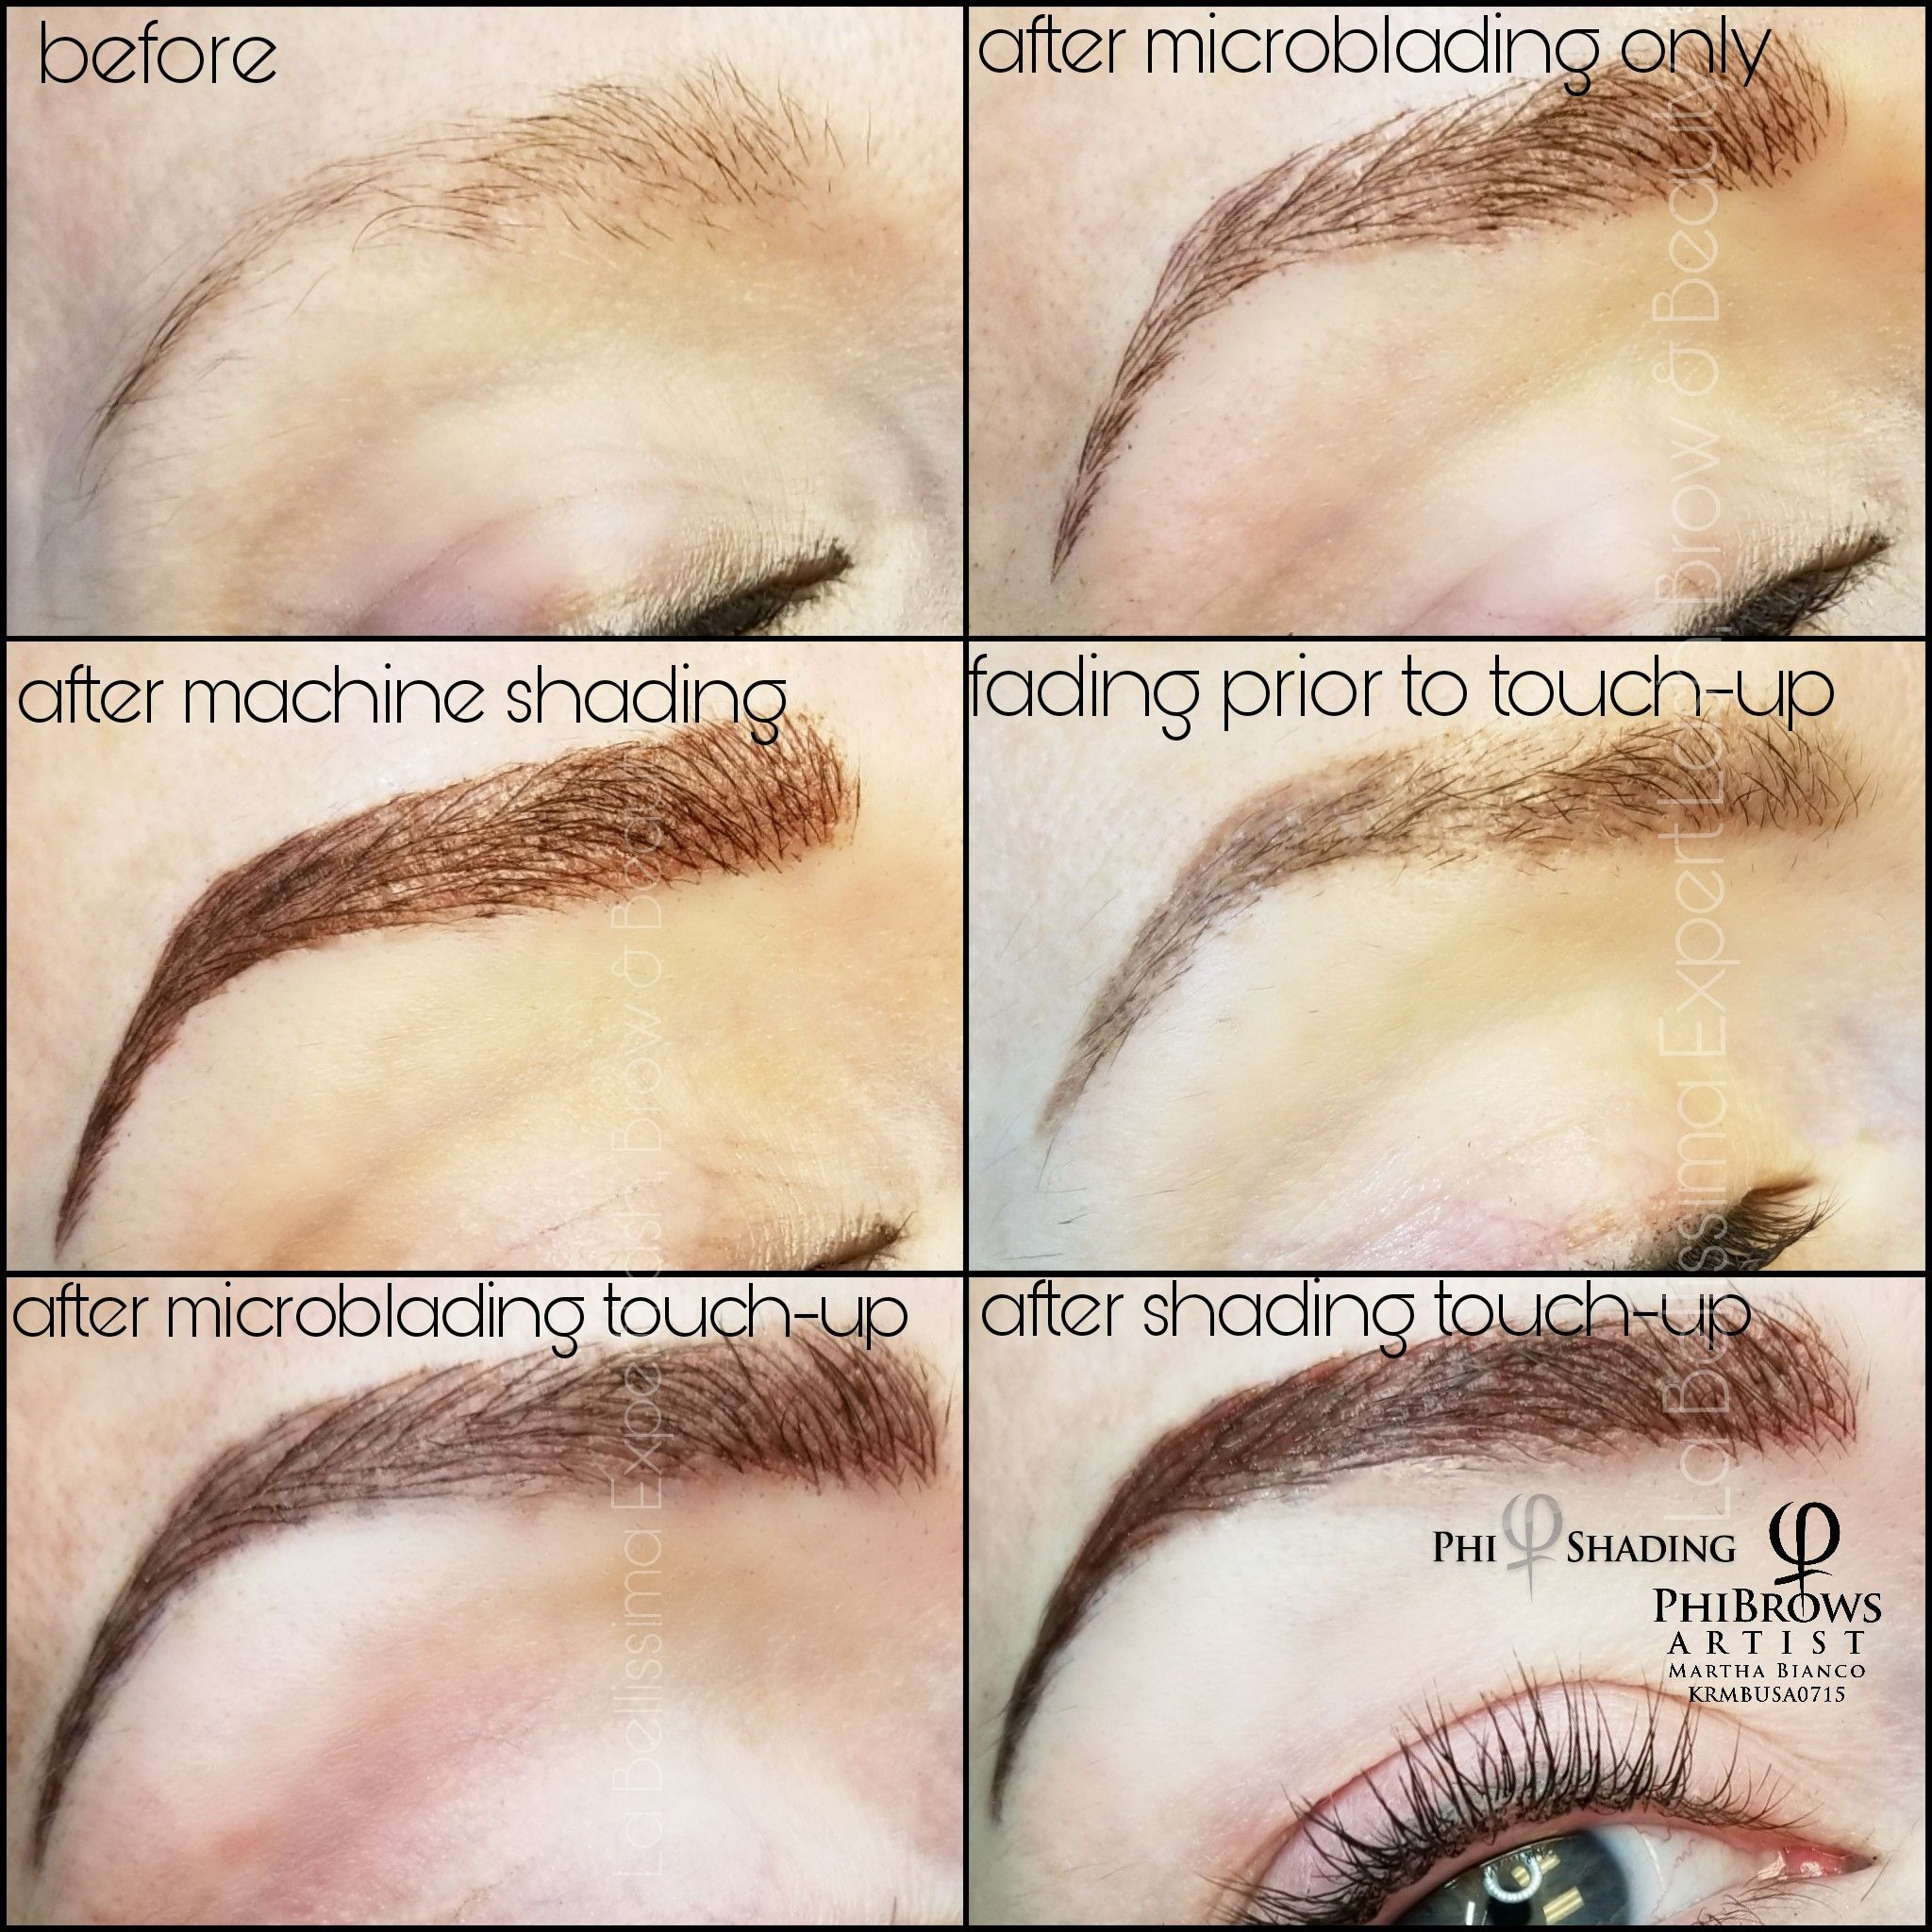 This shows the progress of my most popular brow service